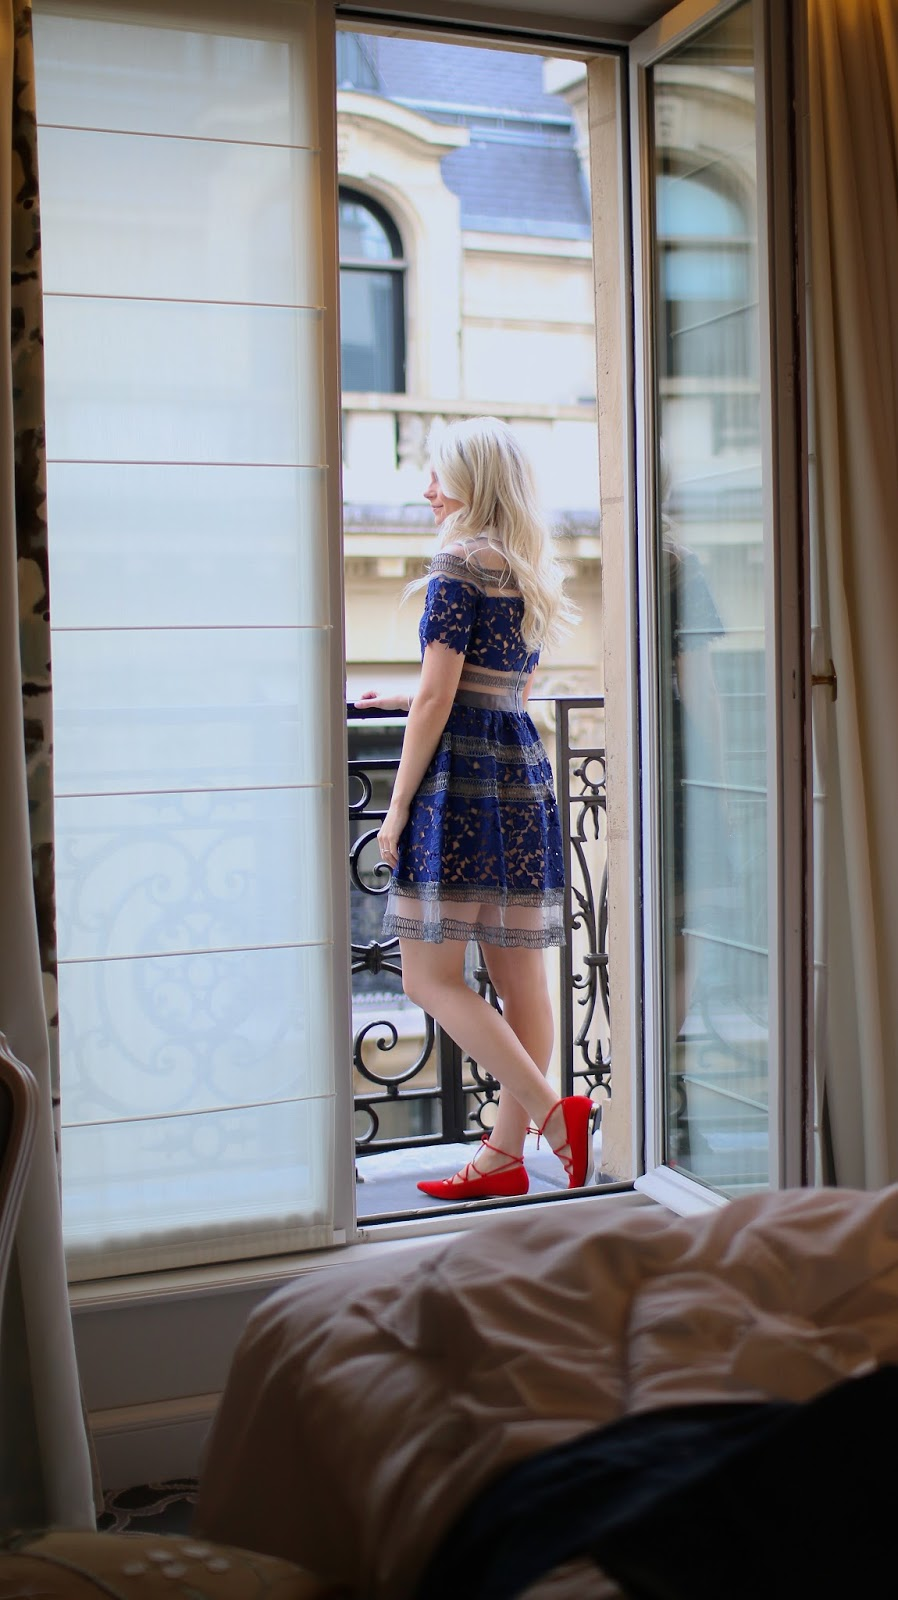 blonde women stands on hotel balcony in paris in beautiful blue lace dress and red shoes